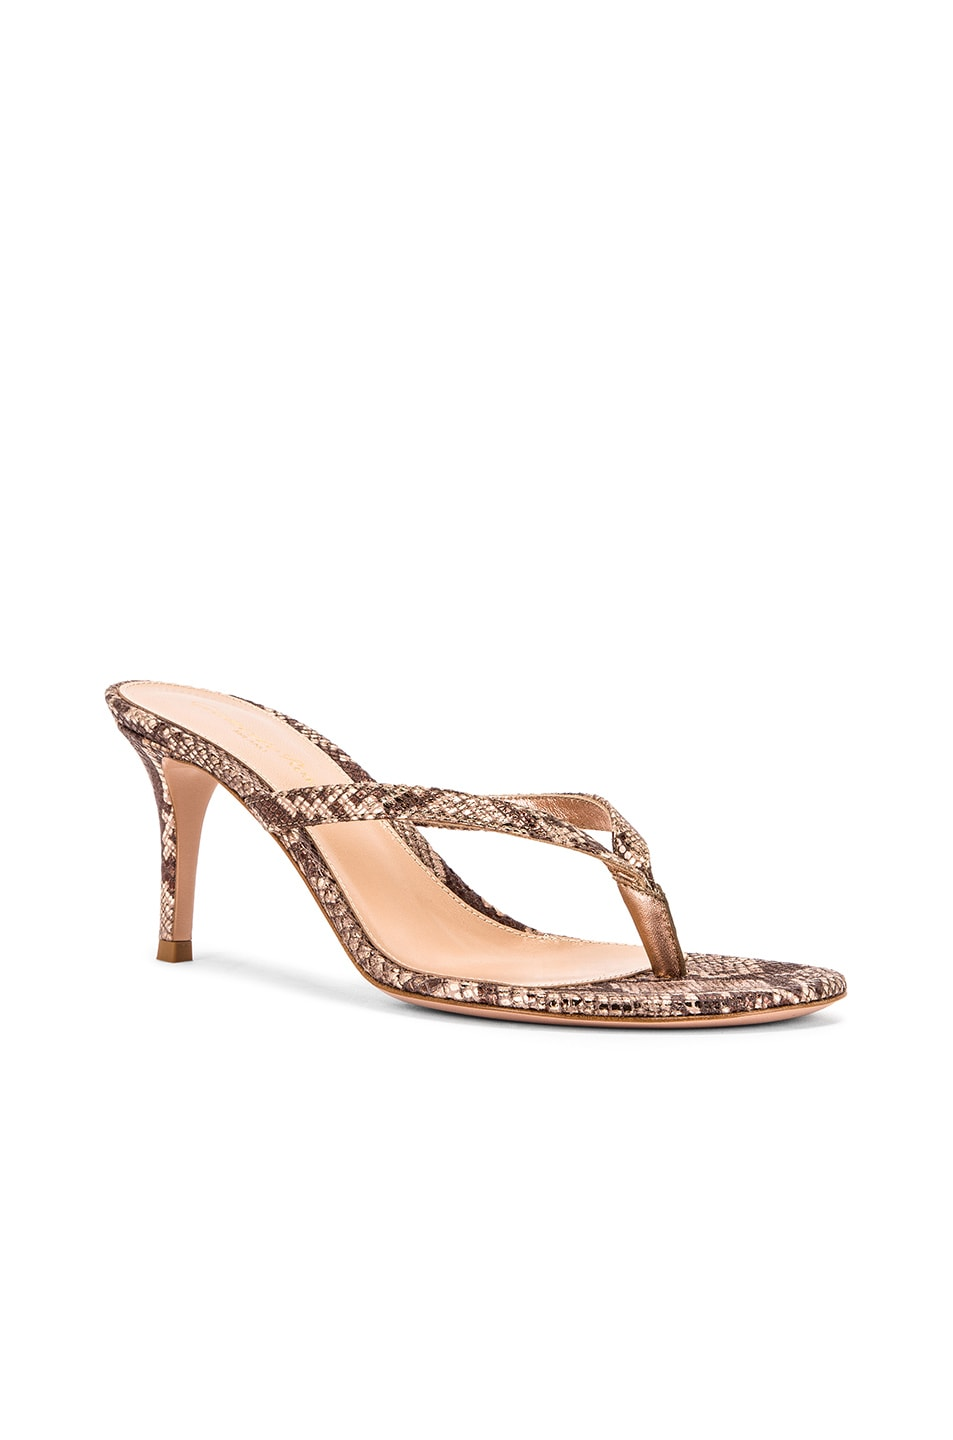 Image 2 of Gianvito Rossi Dallas Thong Sandals in Praline